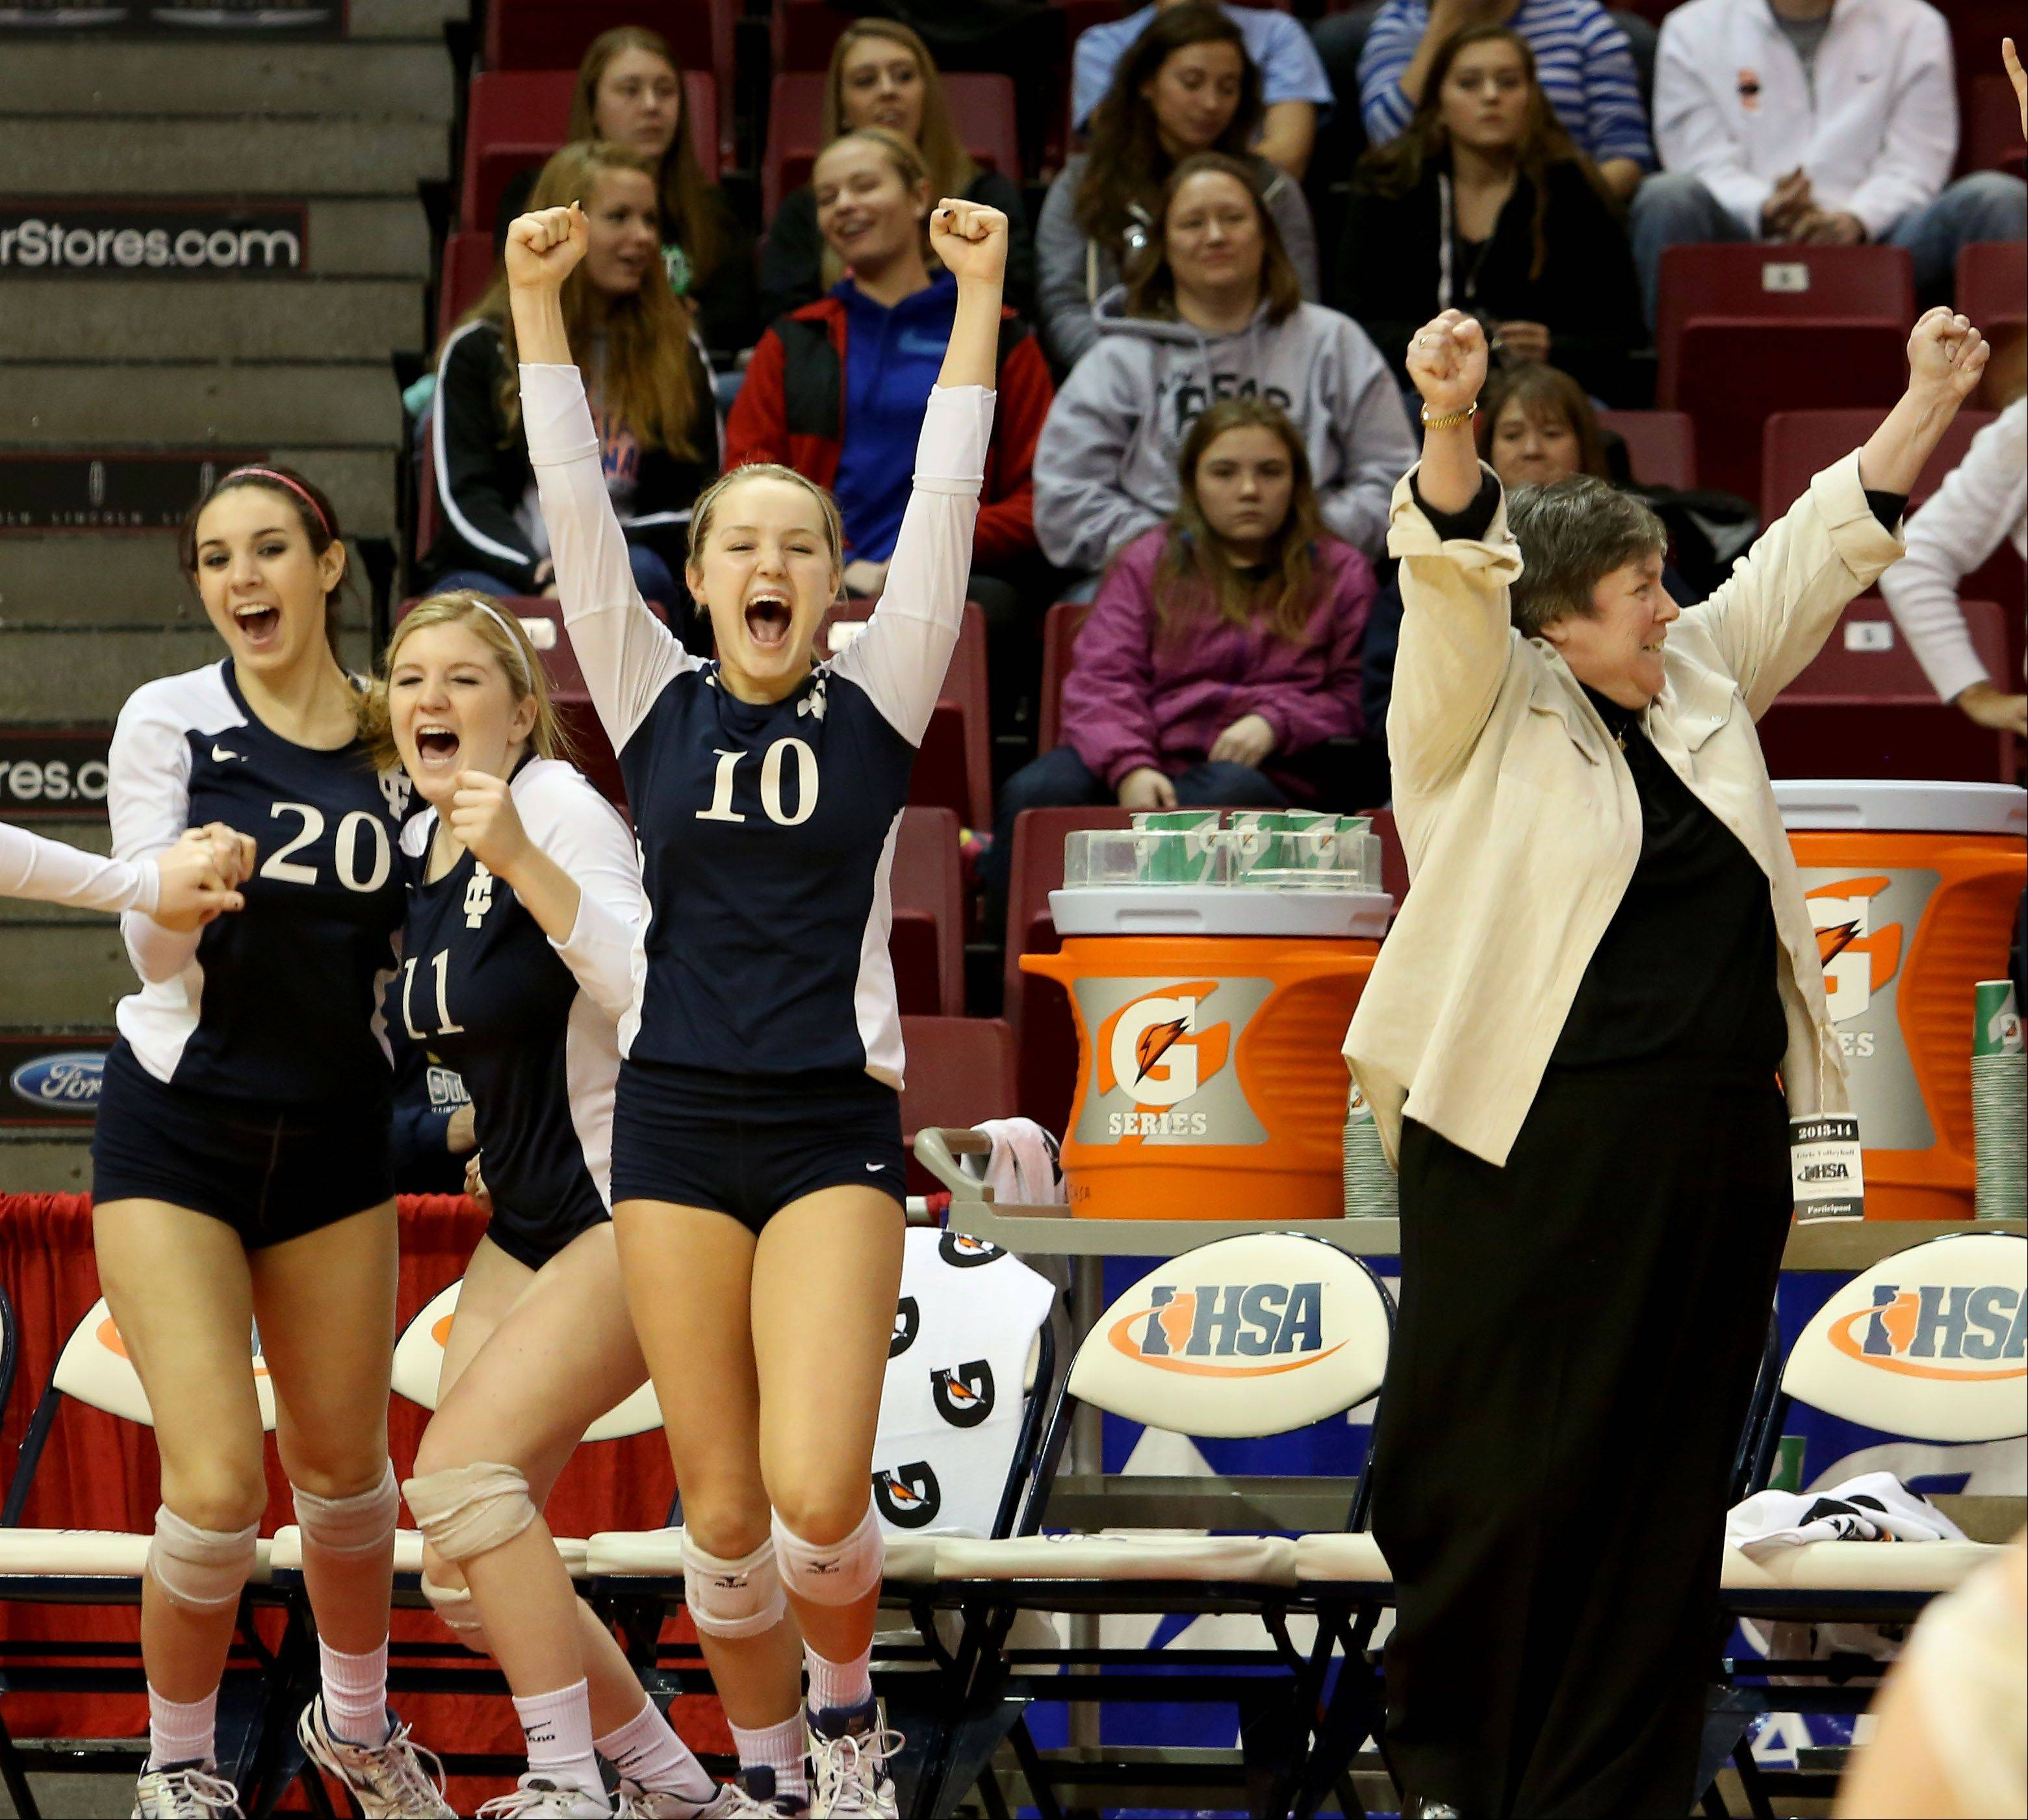 IC Catholic coach Jean Field and team react as they beat Edwards County to win the Class 2A championship girls volleyball match on Saturday in Normal.